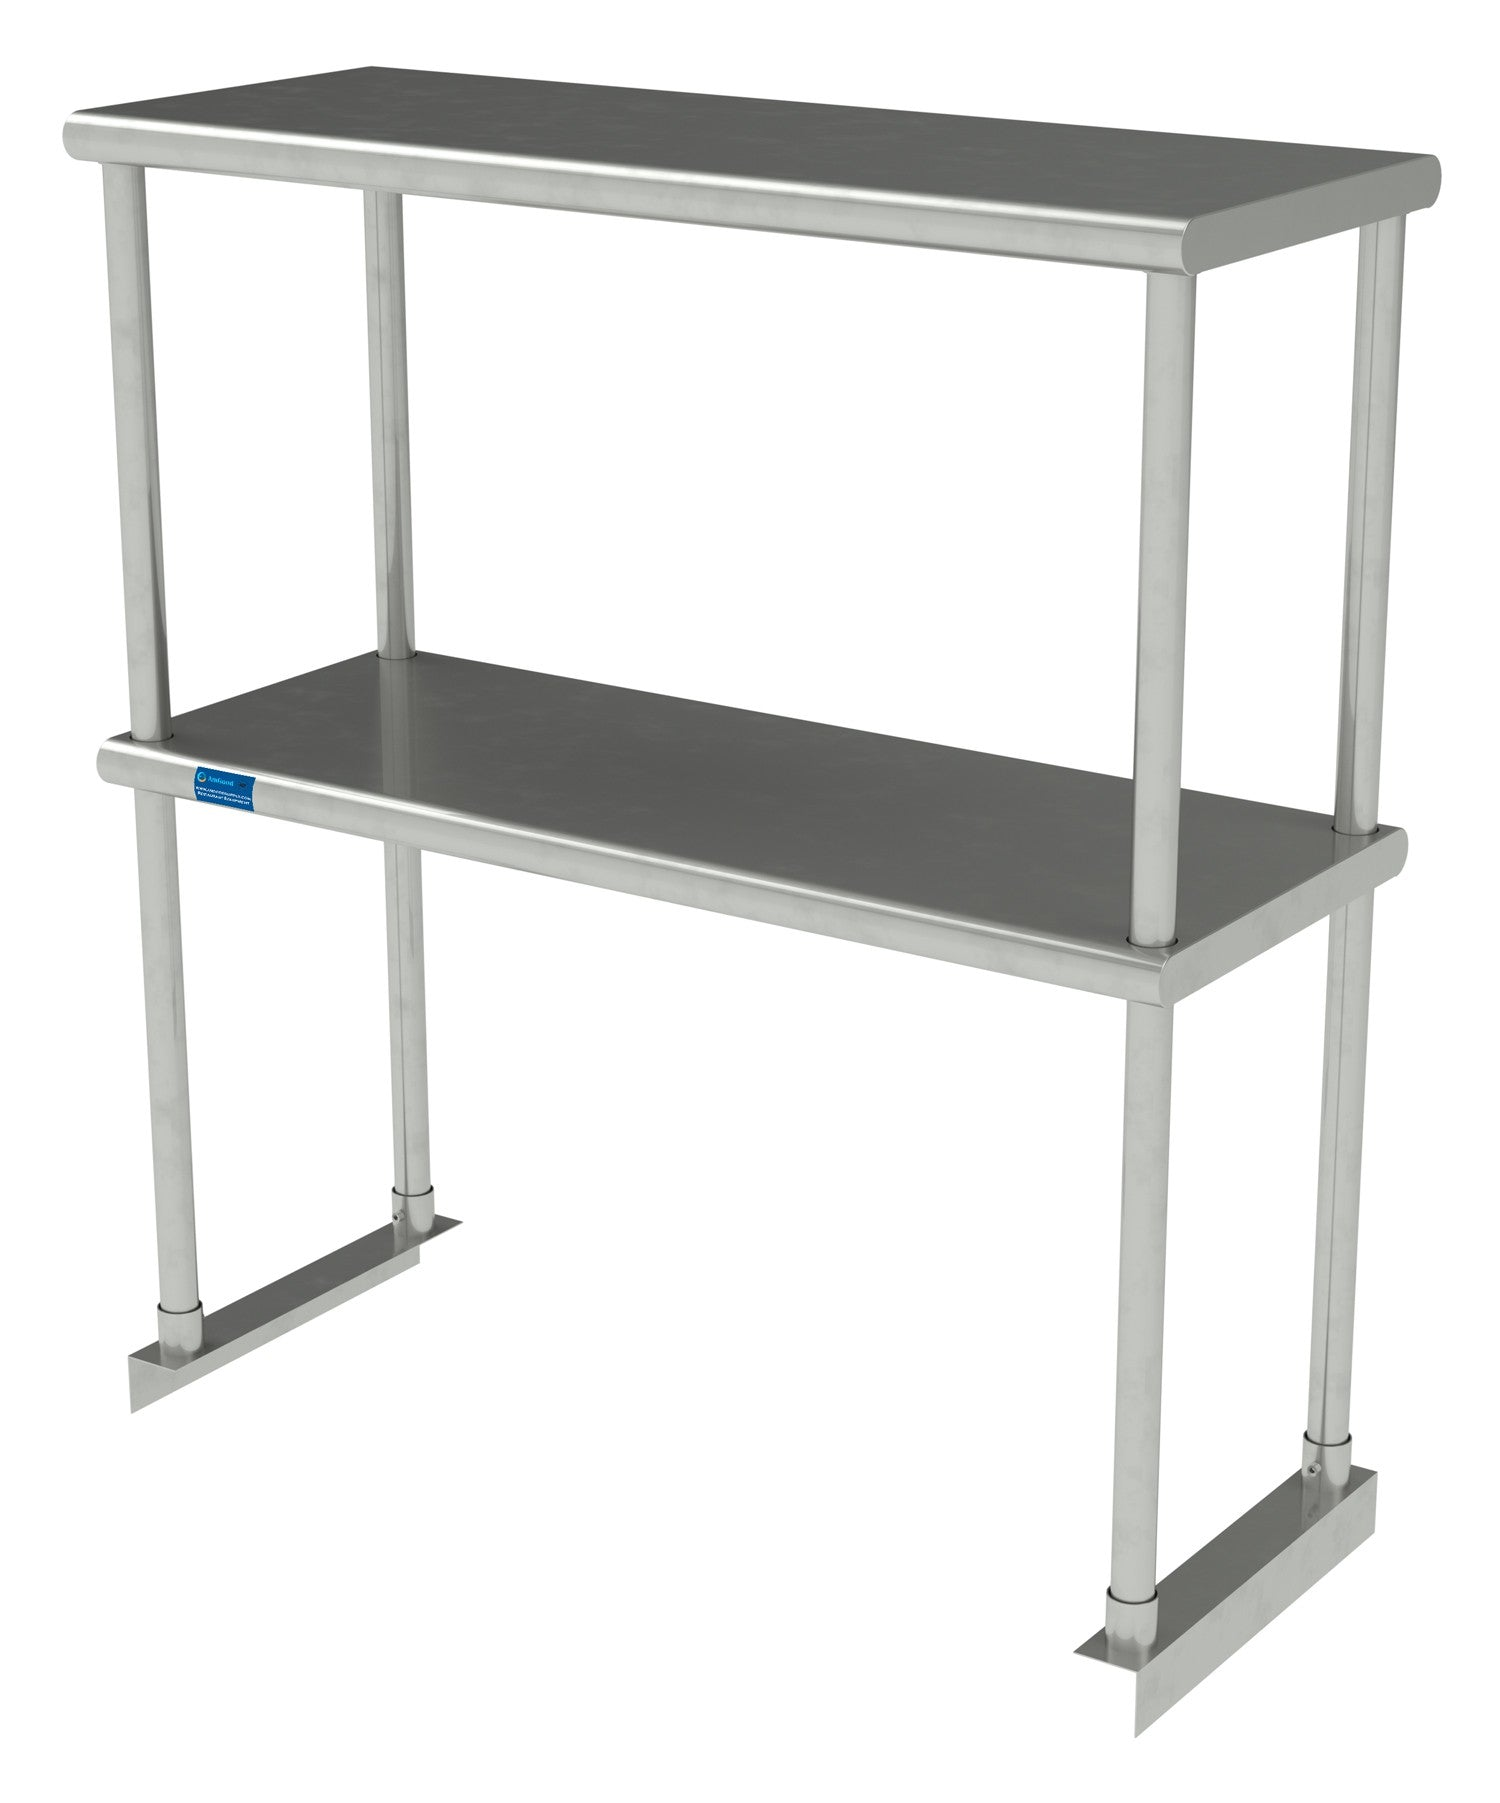 "12"" X 30"" Stainless Steel Double-Tier Shelf - AmGoodSupply.com"